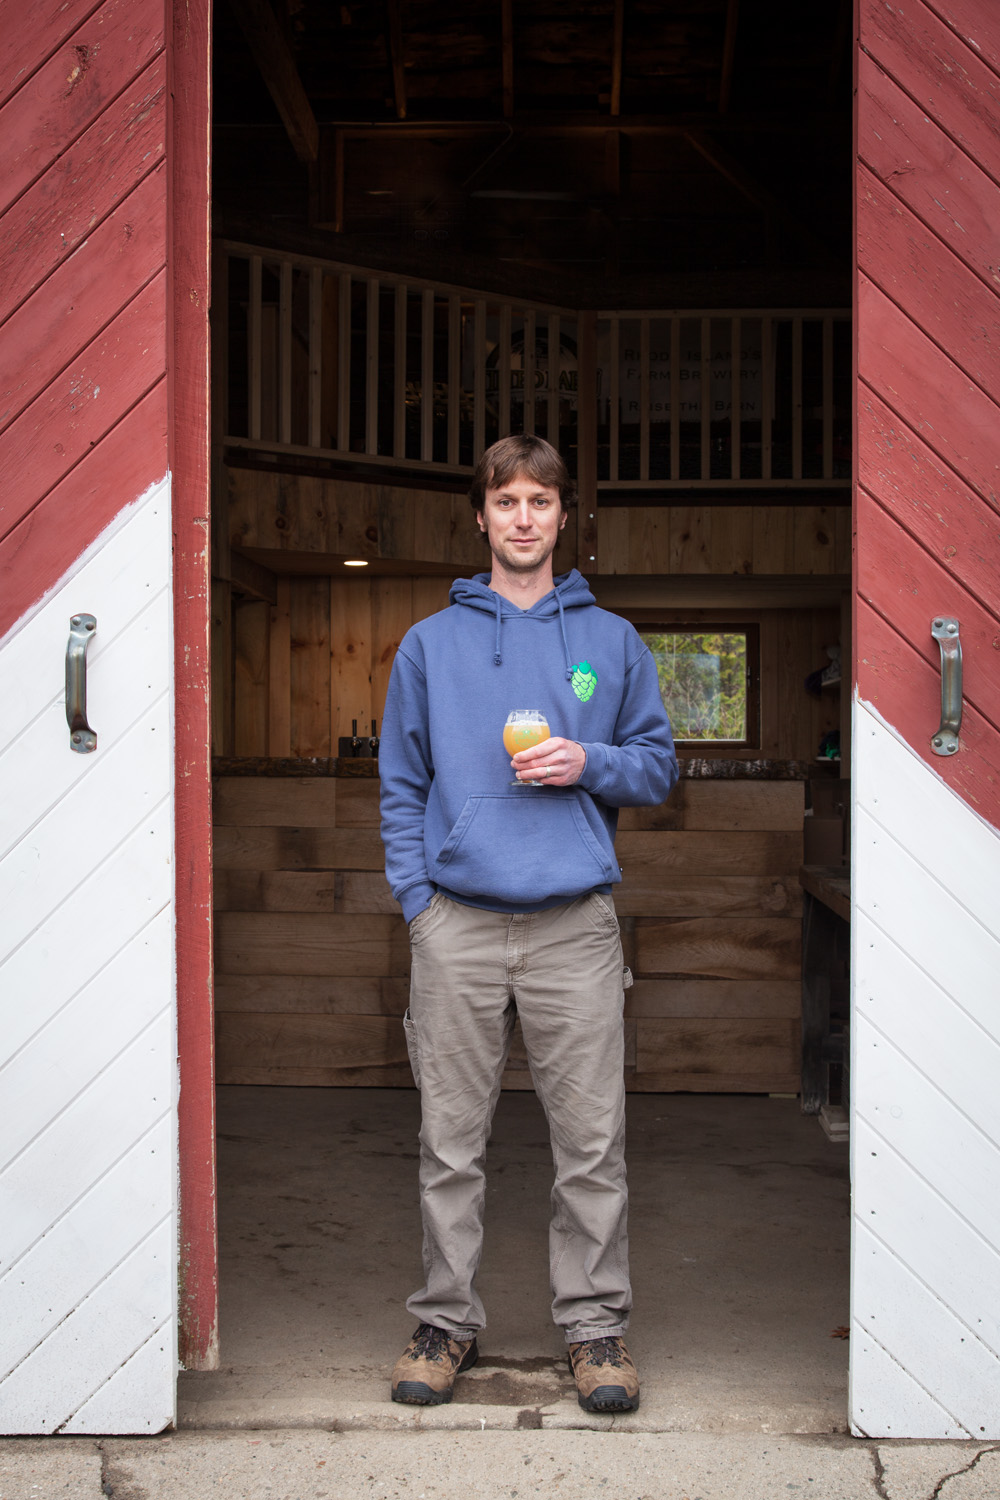 Matt Richardson, Brewmaster at Tilted Barn Brewery, Exeter, RI Established in 2013